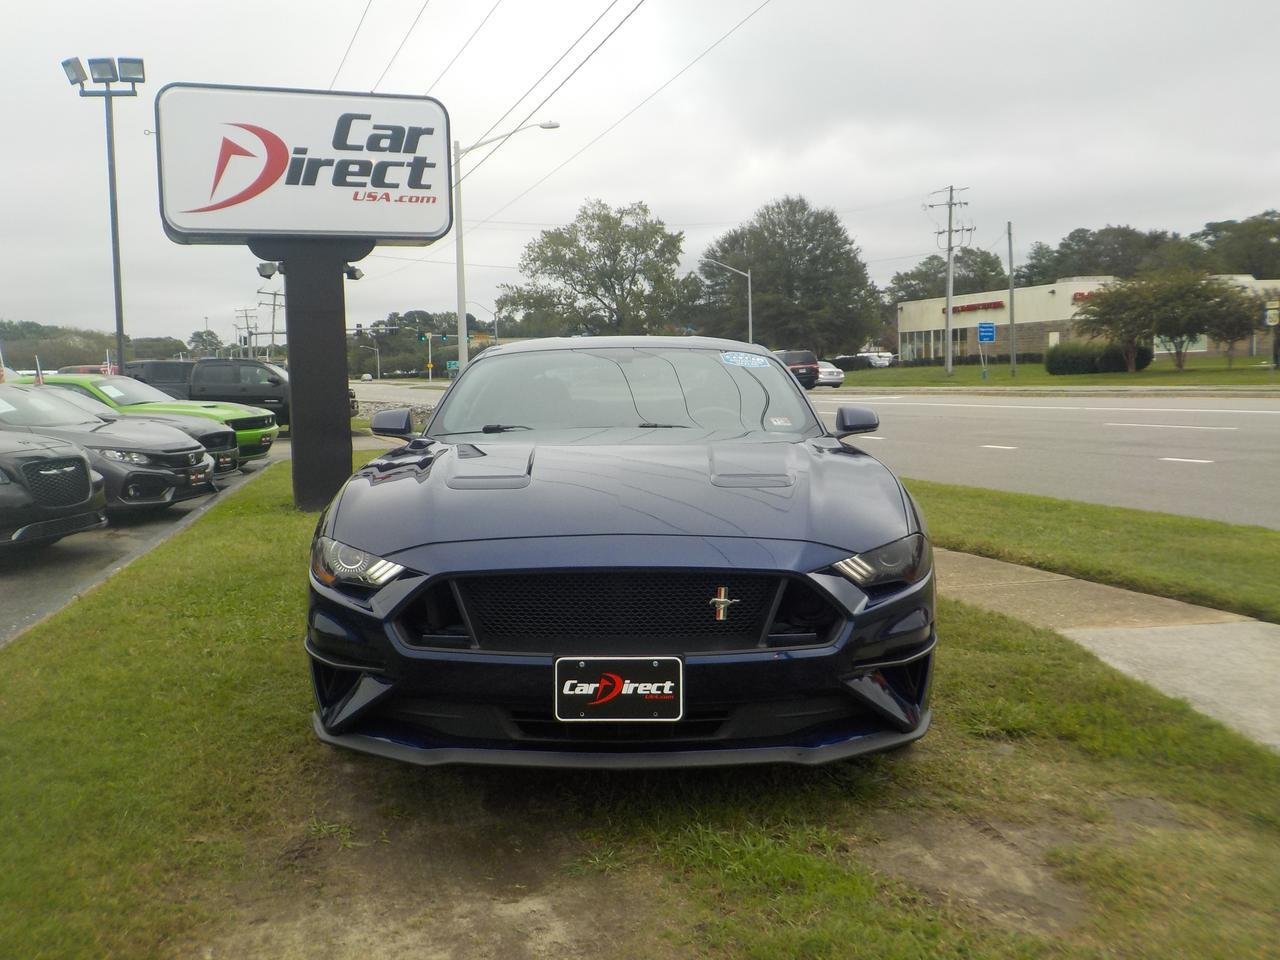 2018 FORD MUSTANG FASTBACK ECOBOOST COUPE, ONE OWNER, KEYLESS START, BACKUP CAM, FORD SYNC, BLUETOOTH, ONLY 37K MILES! Virginia Beach VA